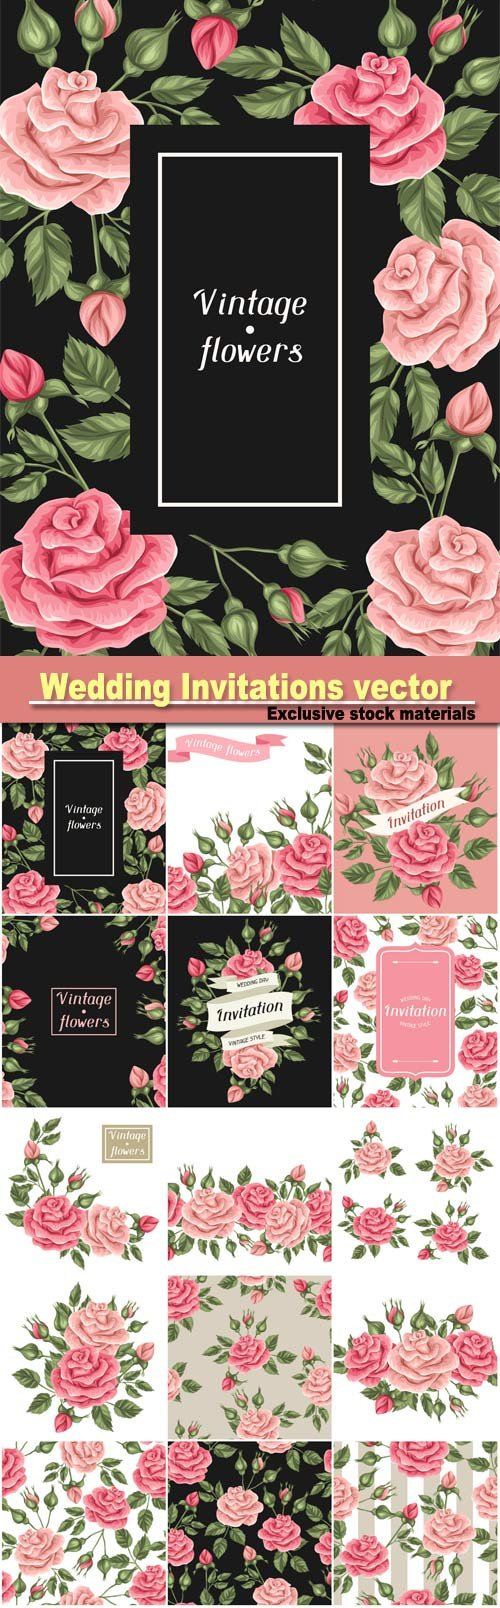 Wedding Invitations, vector background with roses